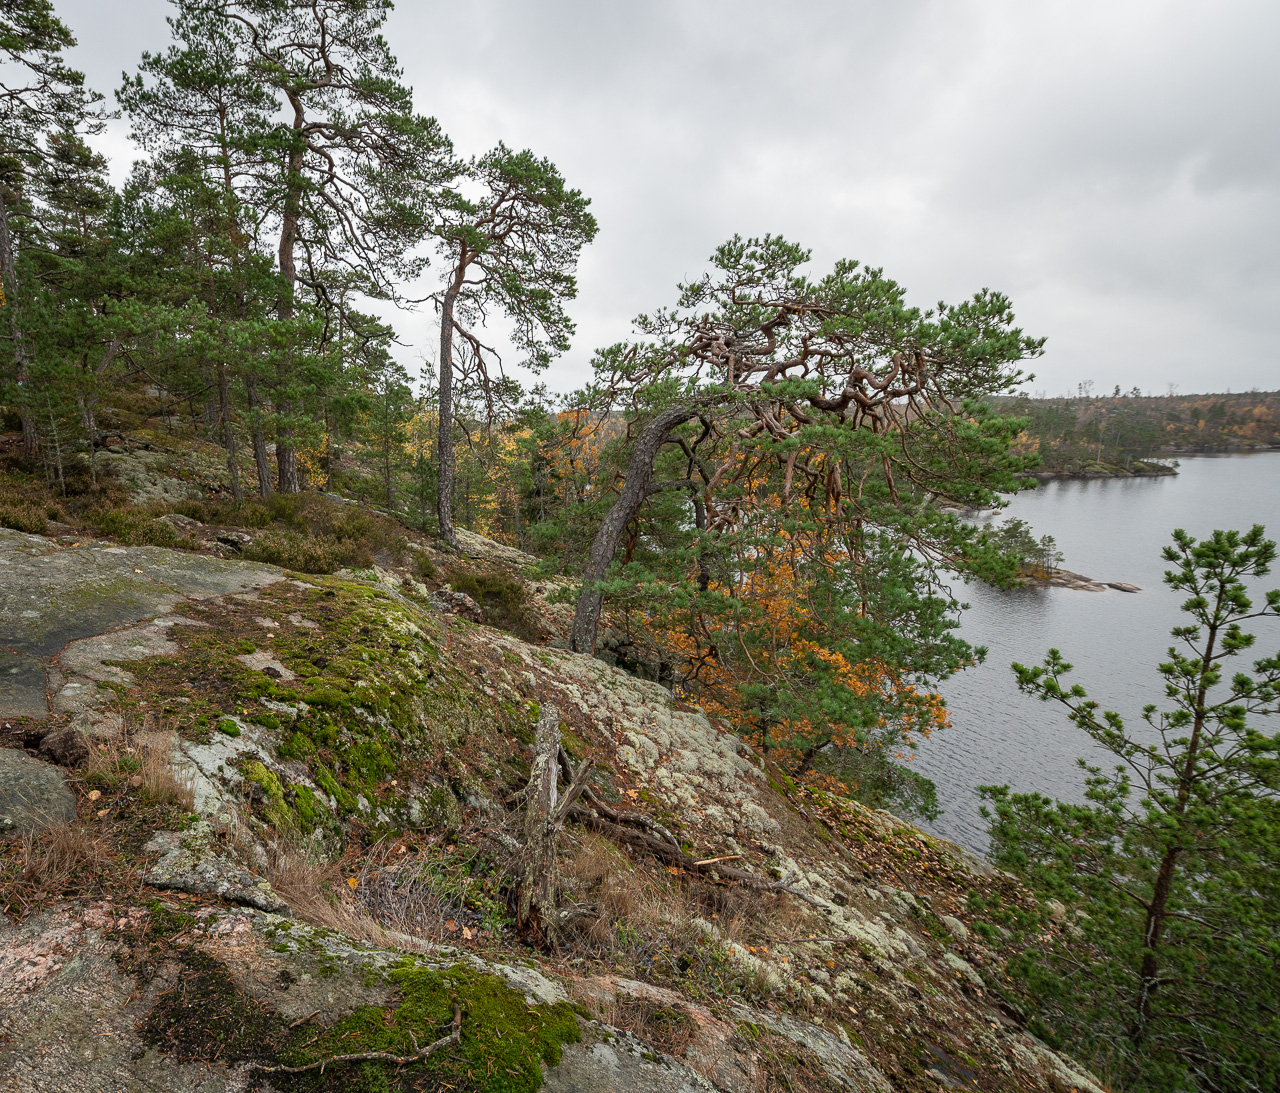 Tyresta Nationalpark Foto: Christer Blum